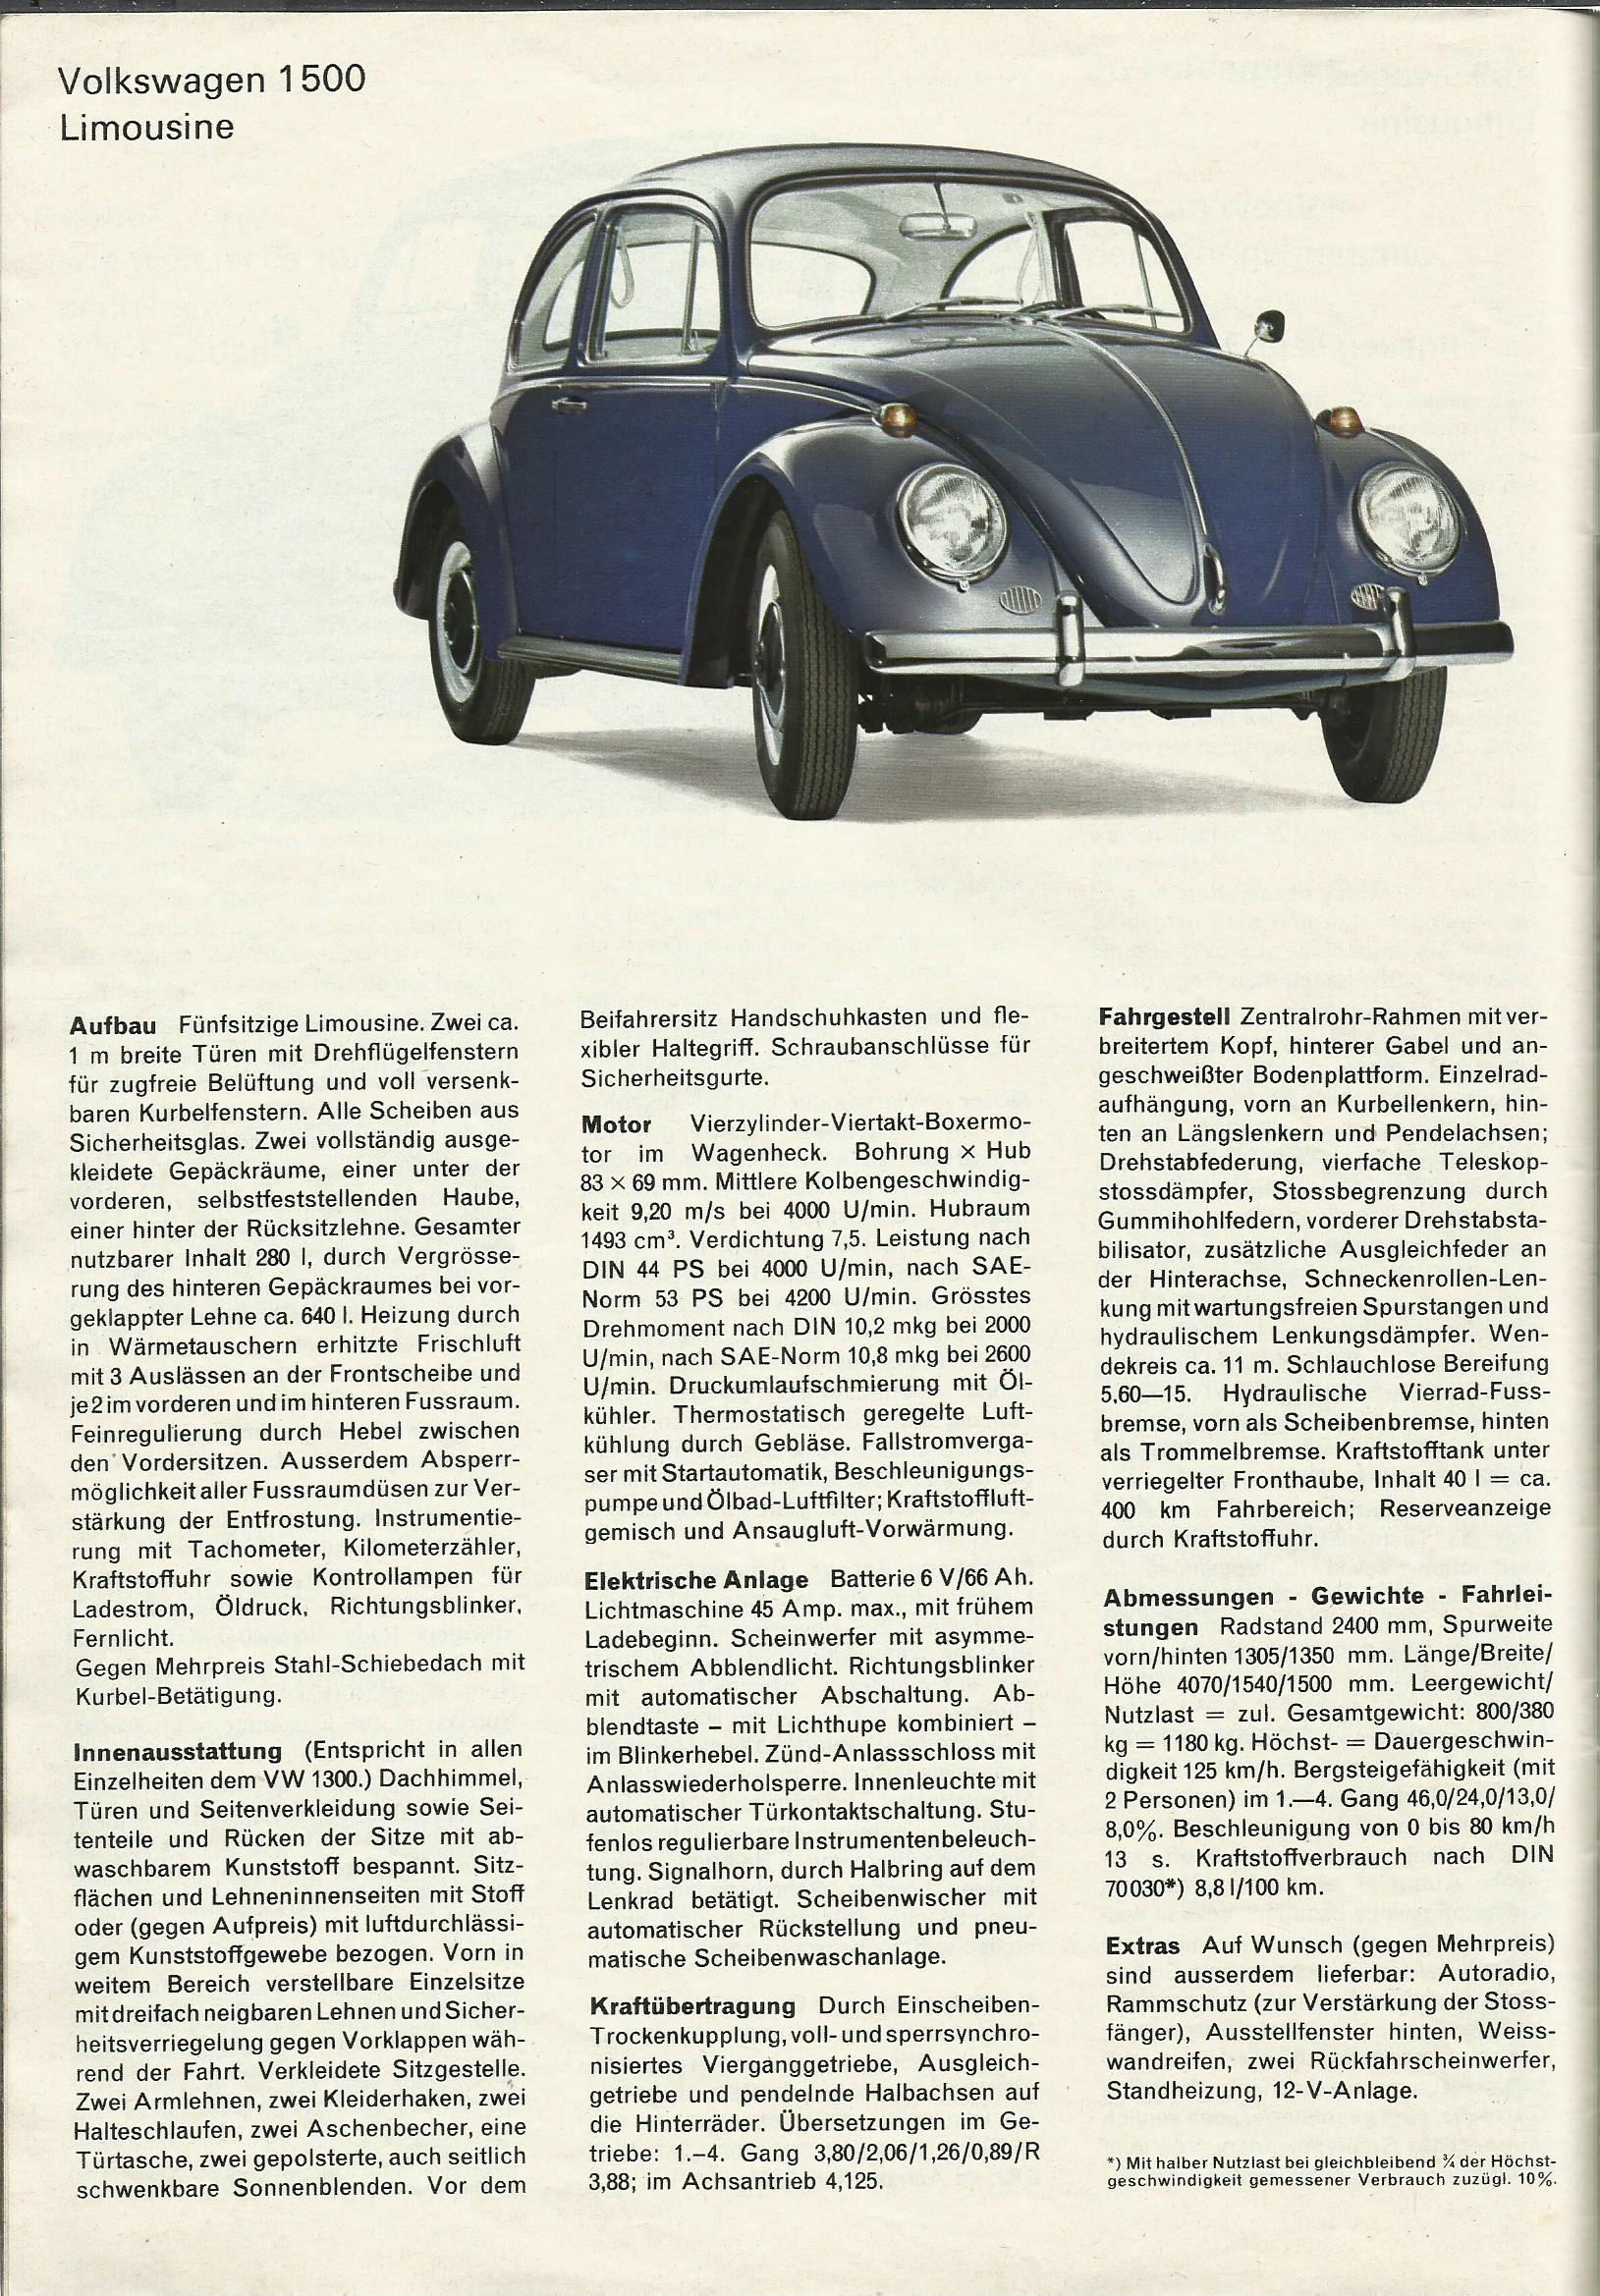 Innenausstattung New Beetle Thesamba Vw Archives January 1967 Vw Beetle Brochure German